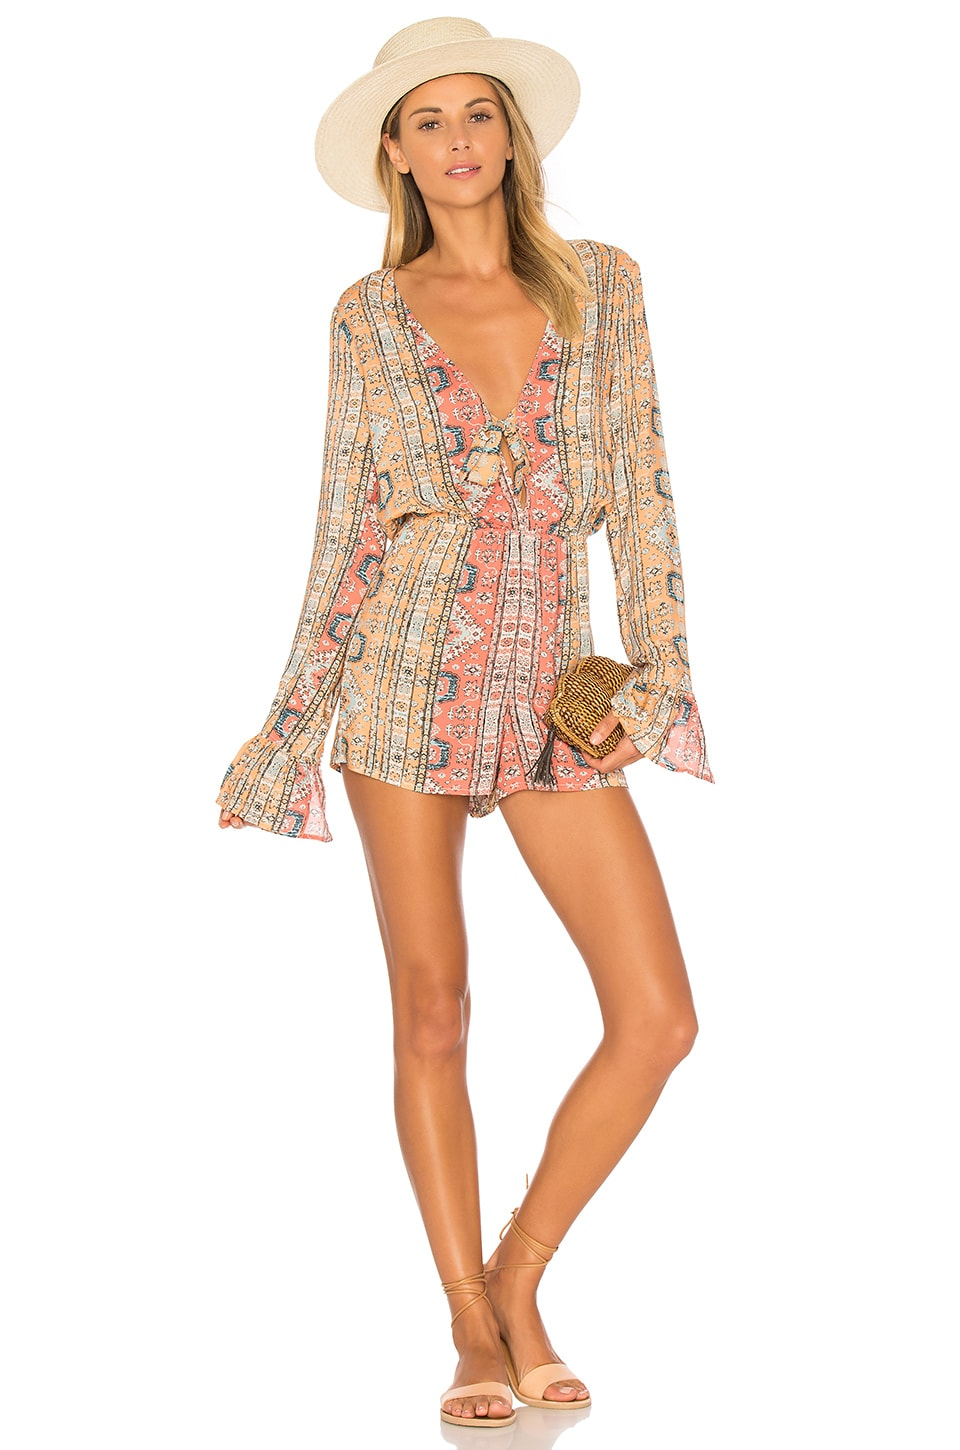 ale by alessandra Livia Romper in Tapestry